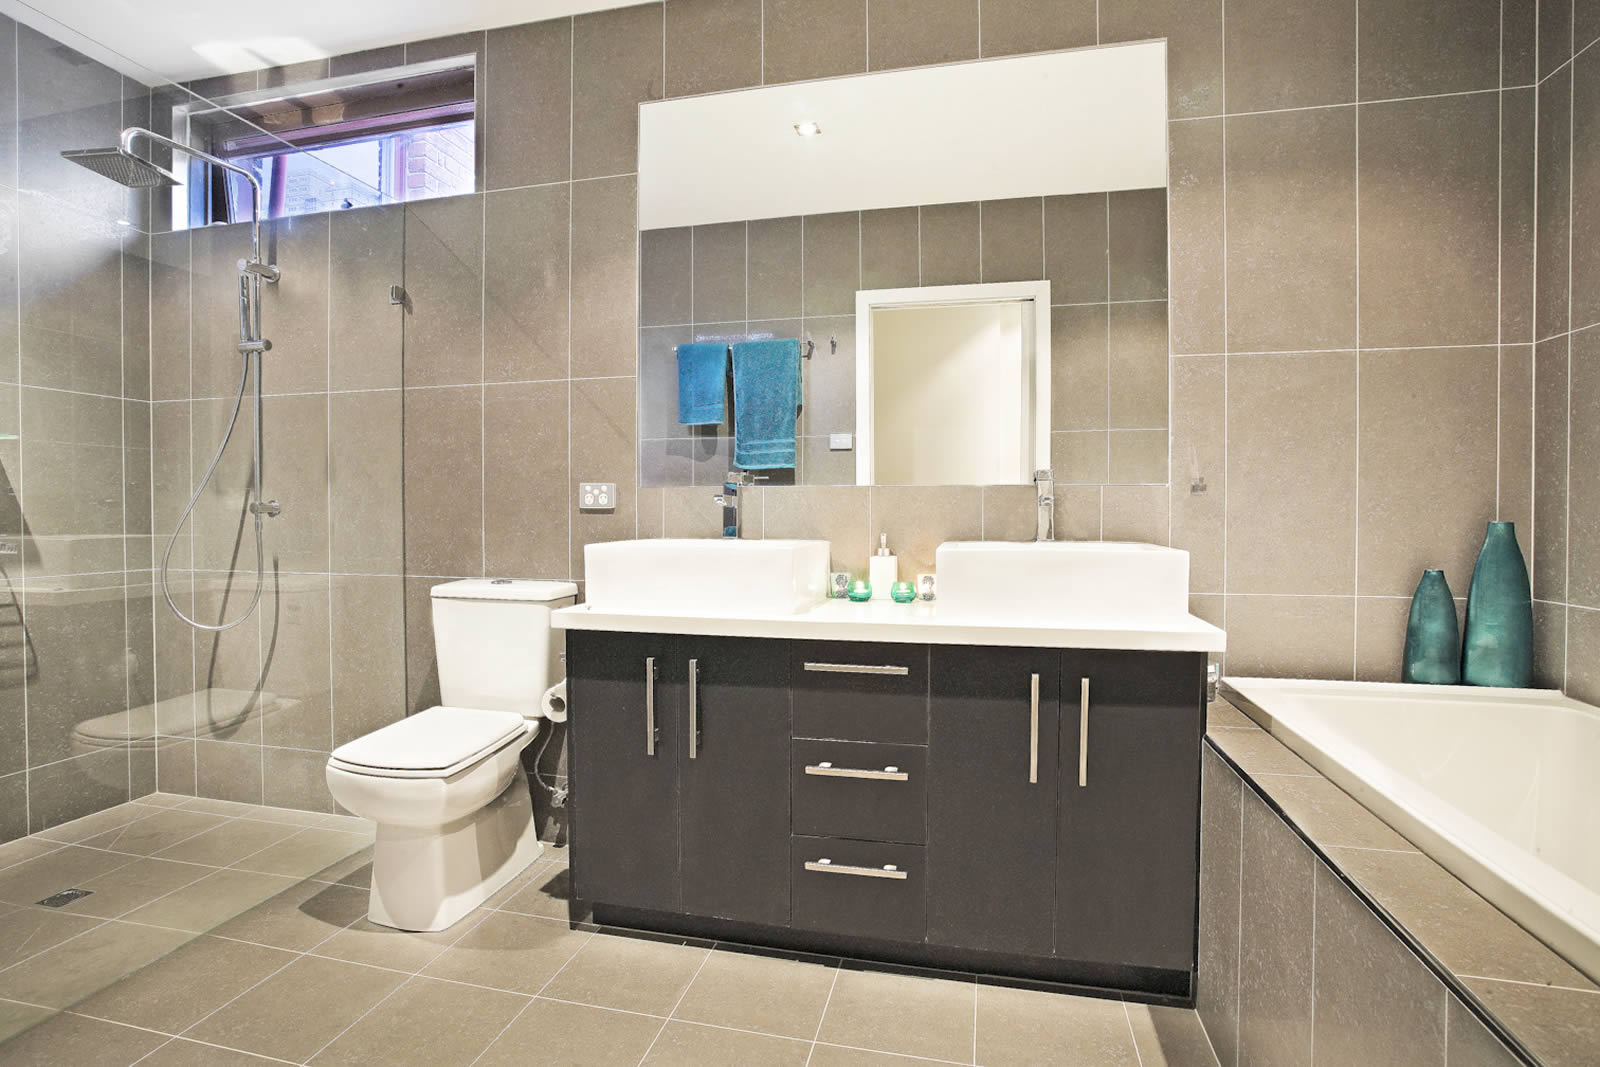 Bathroom Designer Melbourne designer-bathrooms-melbourne-australia - cos interiors pty ltd